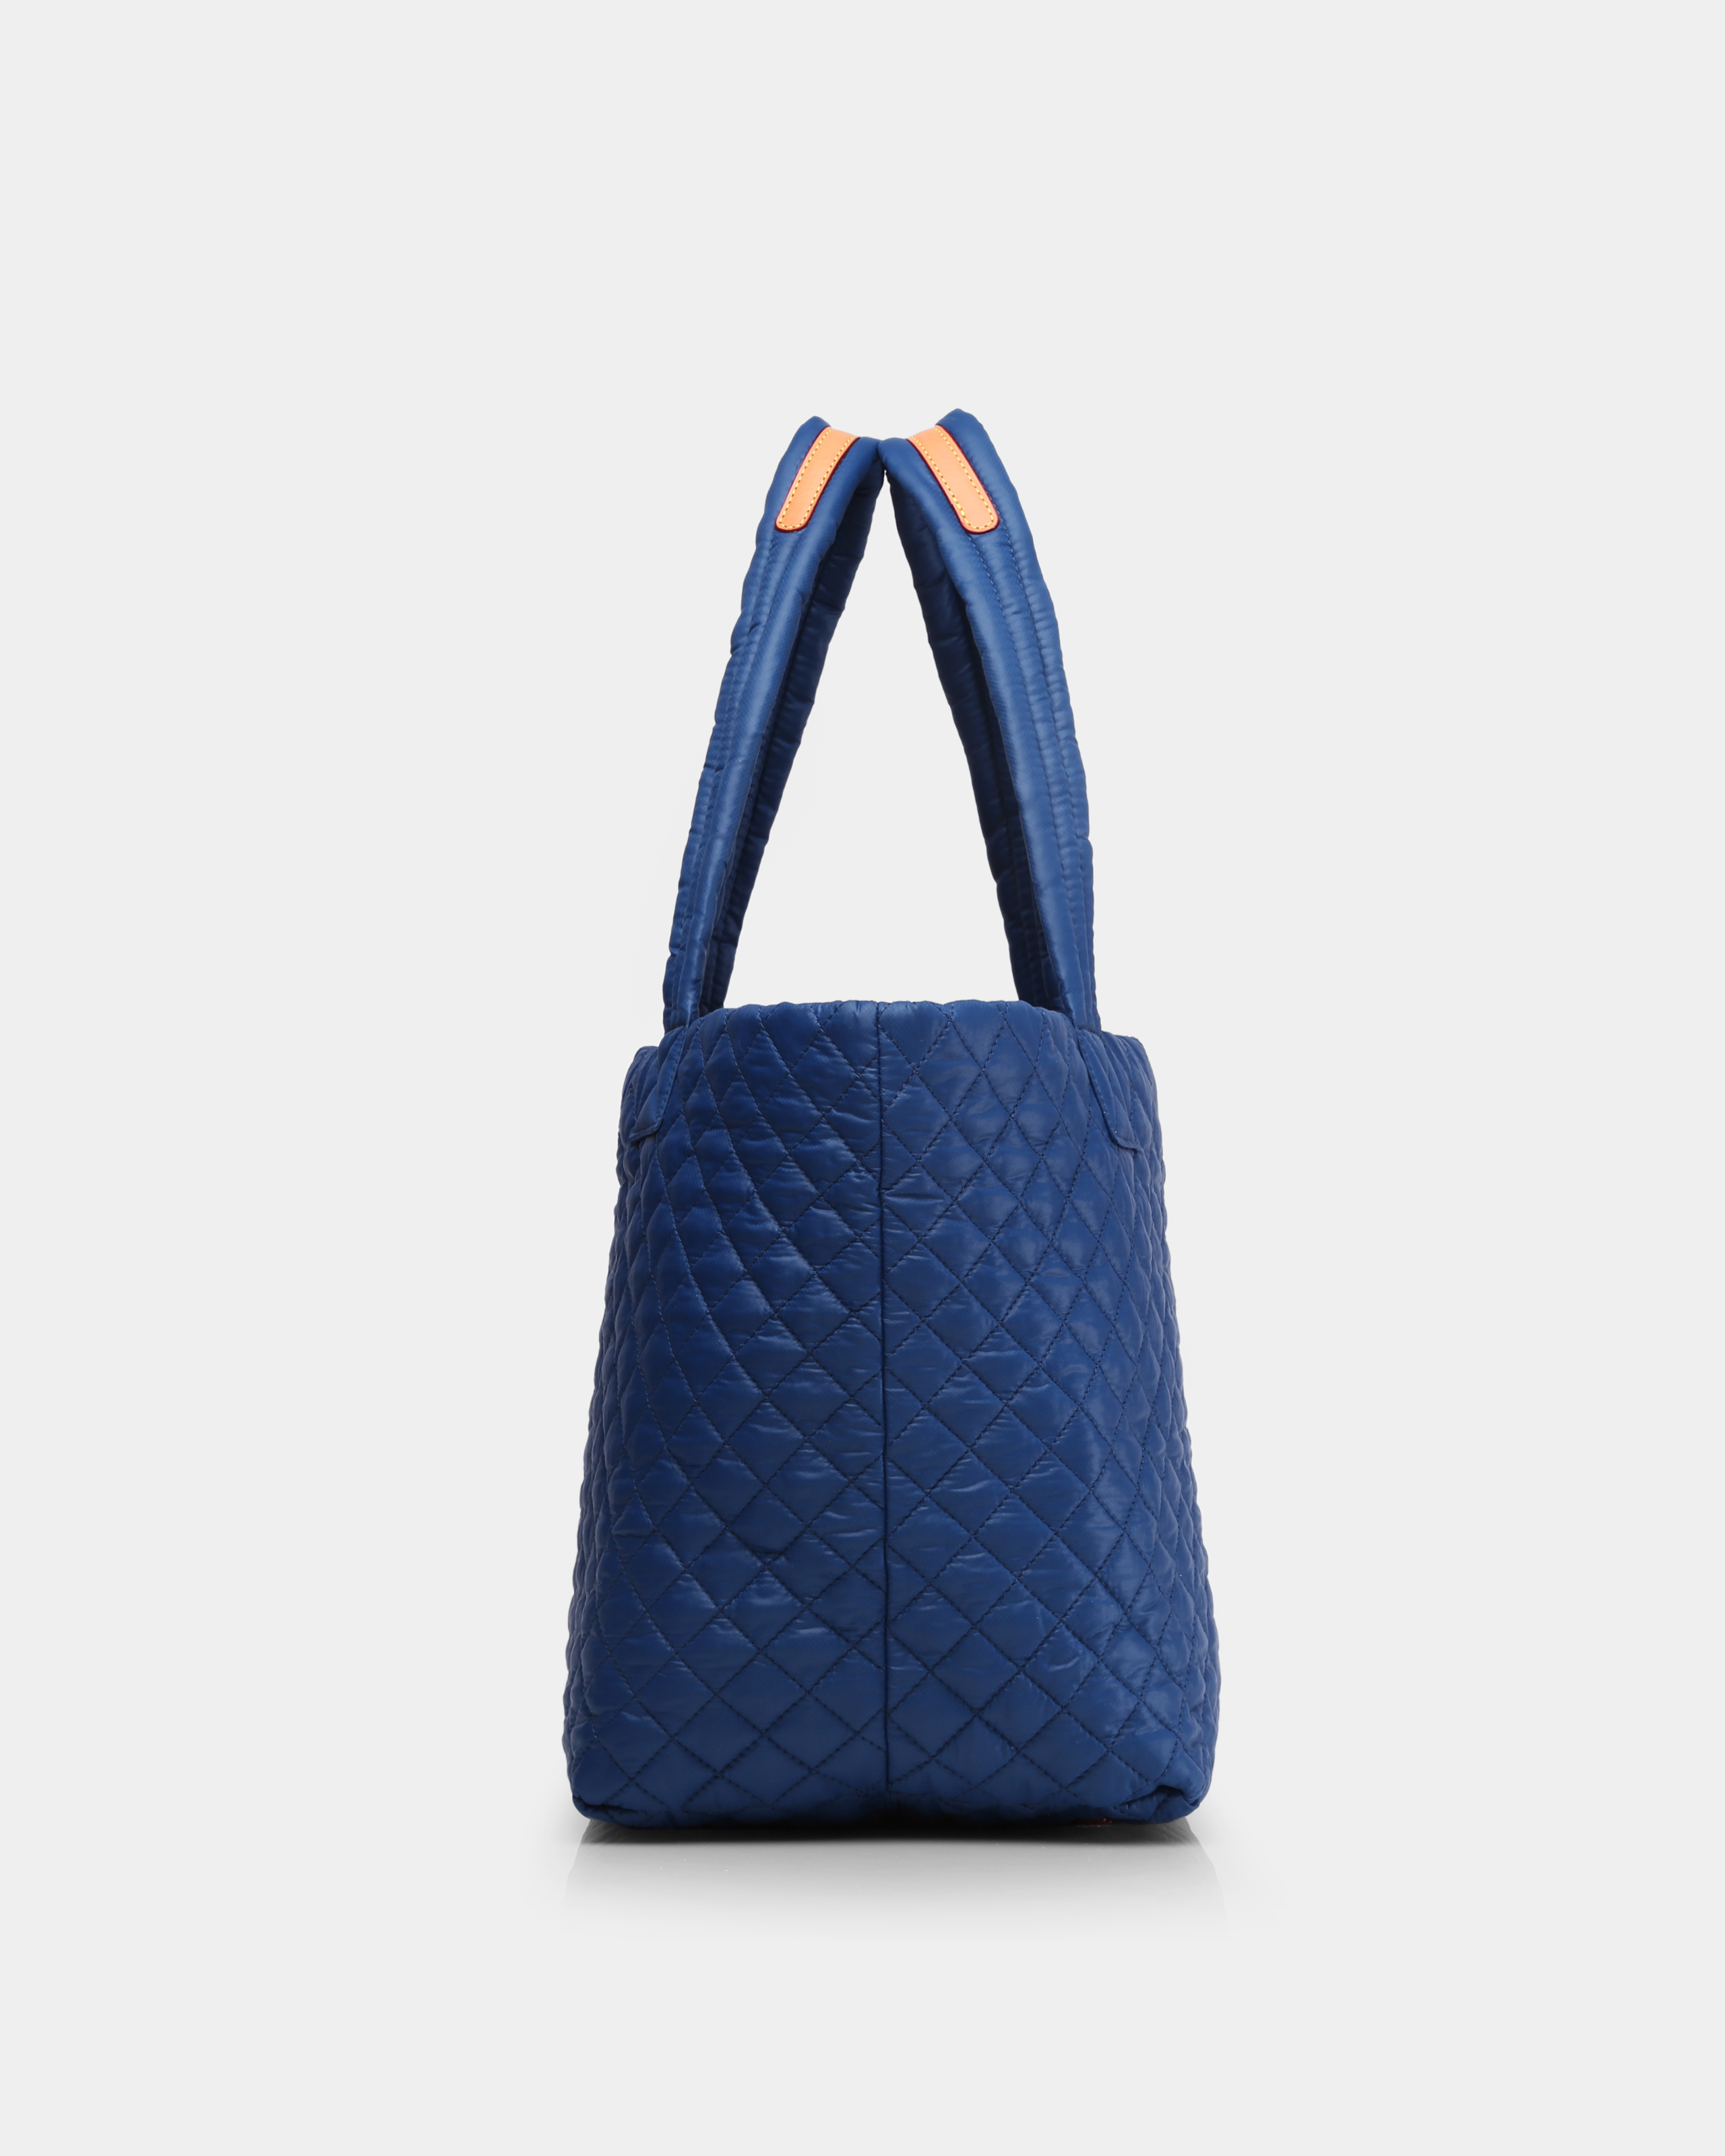 Estate Blue Oxford Medium Metro Tote (3761371) in color Estate Blue